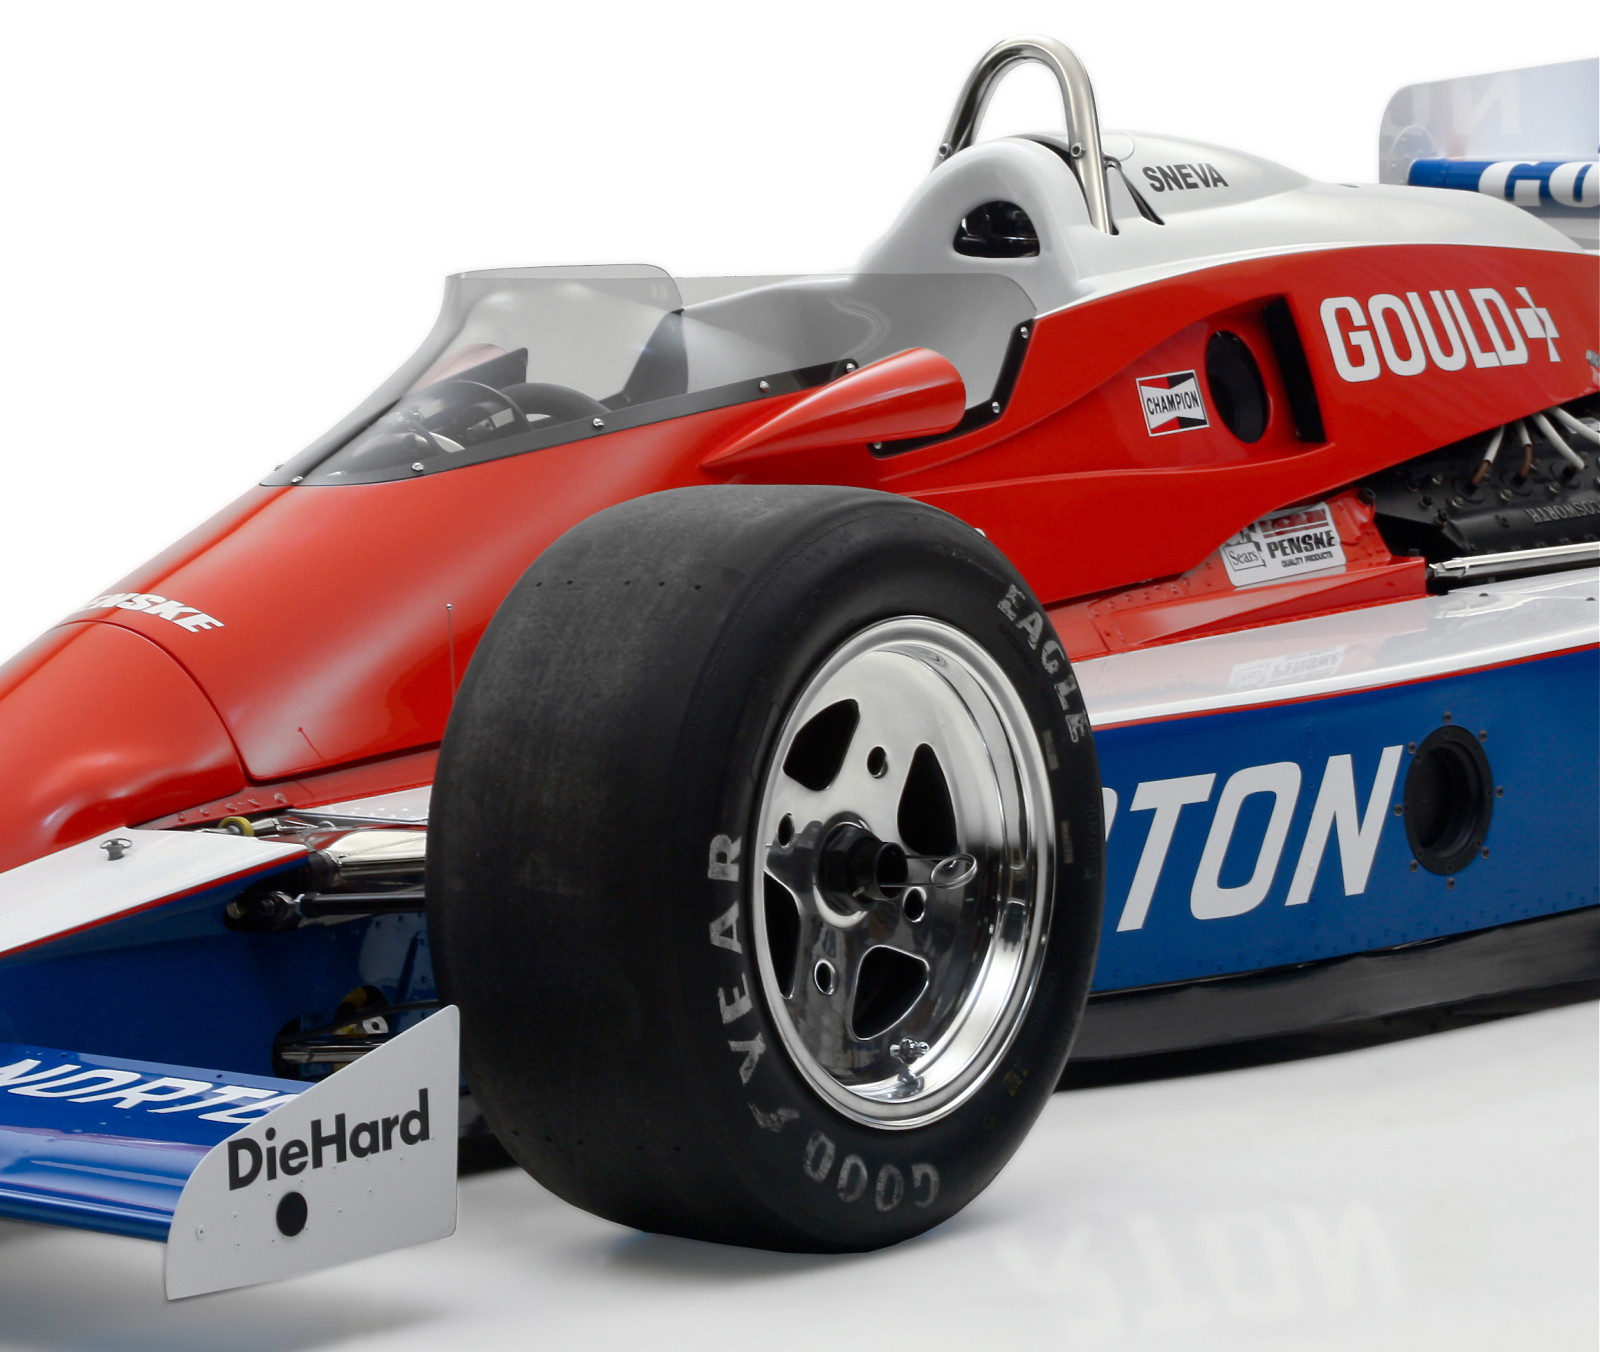 Special Graphics, vinyl signage and vintage racecar livery